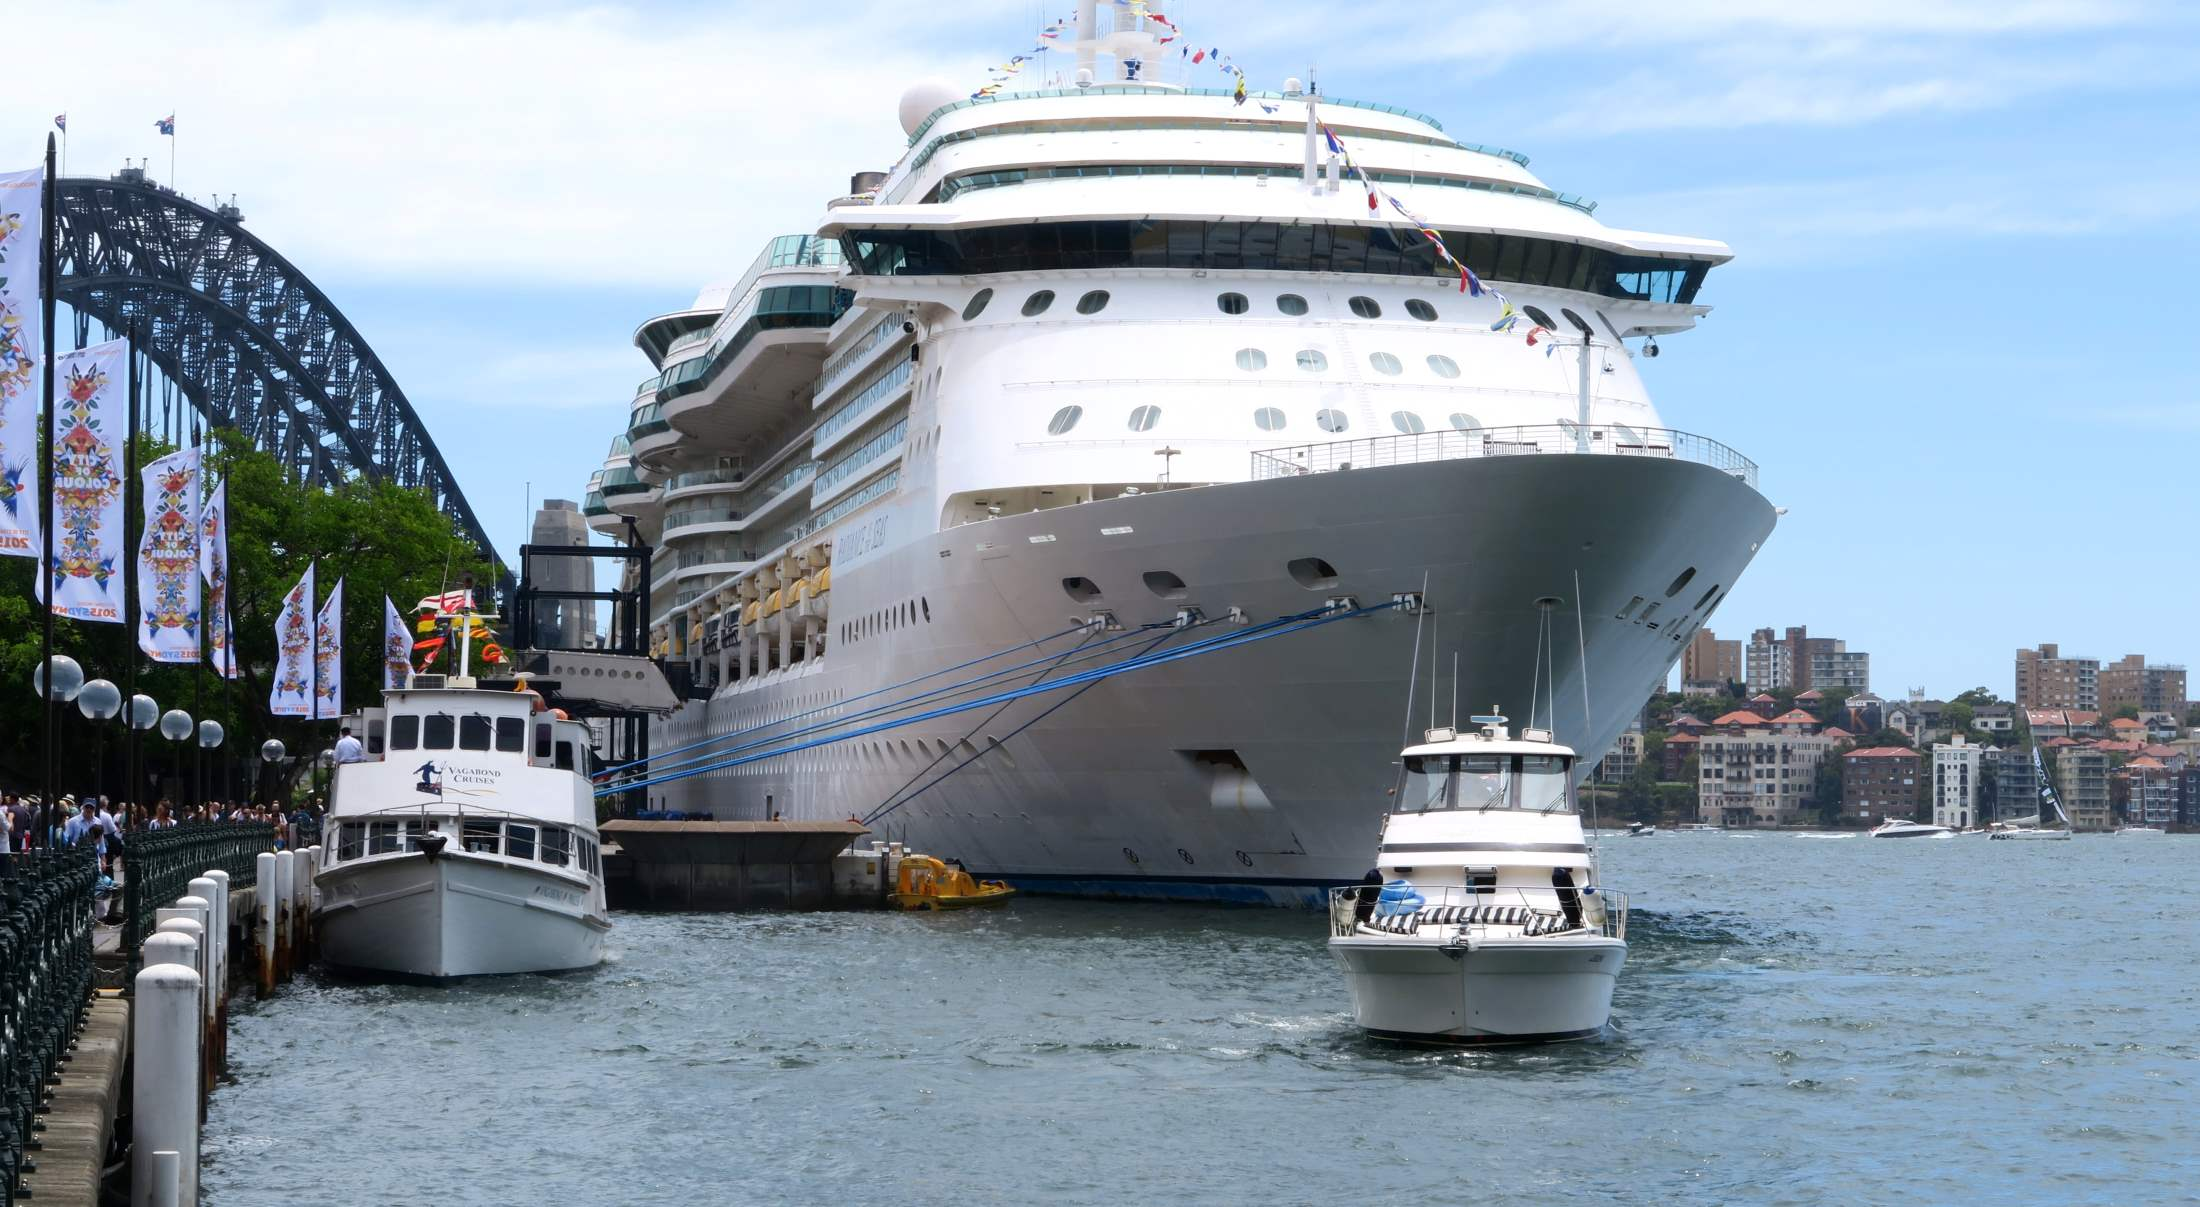 Coastwide Airport Transfers Sydney Cruise Ship Transfers, Central Station Transfers Sydney City Airport & Hotel Transport